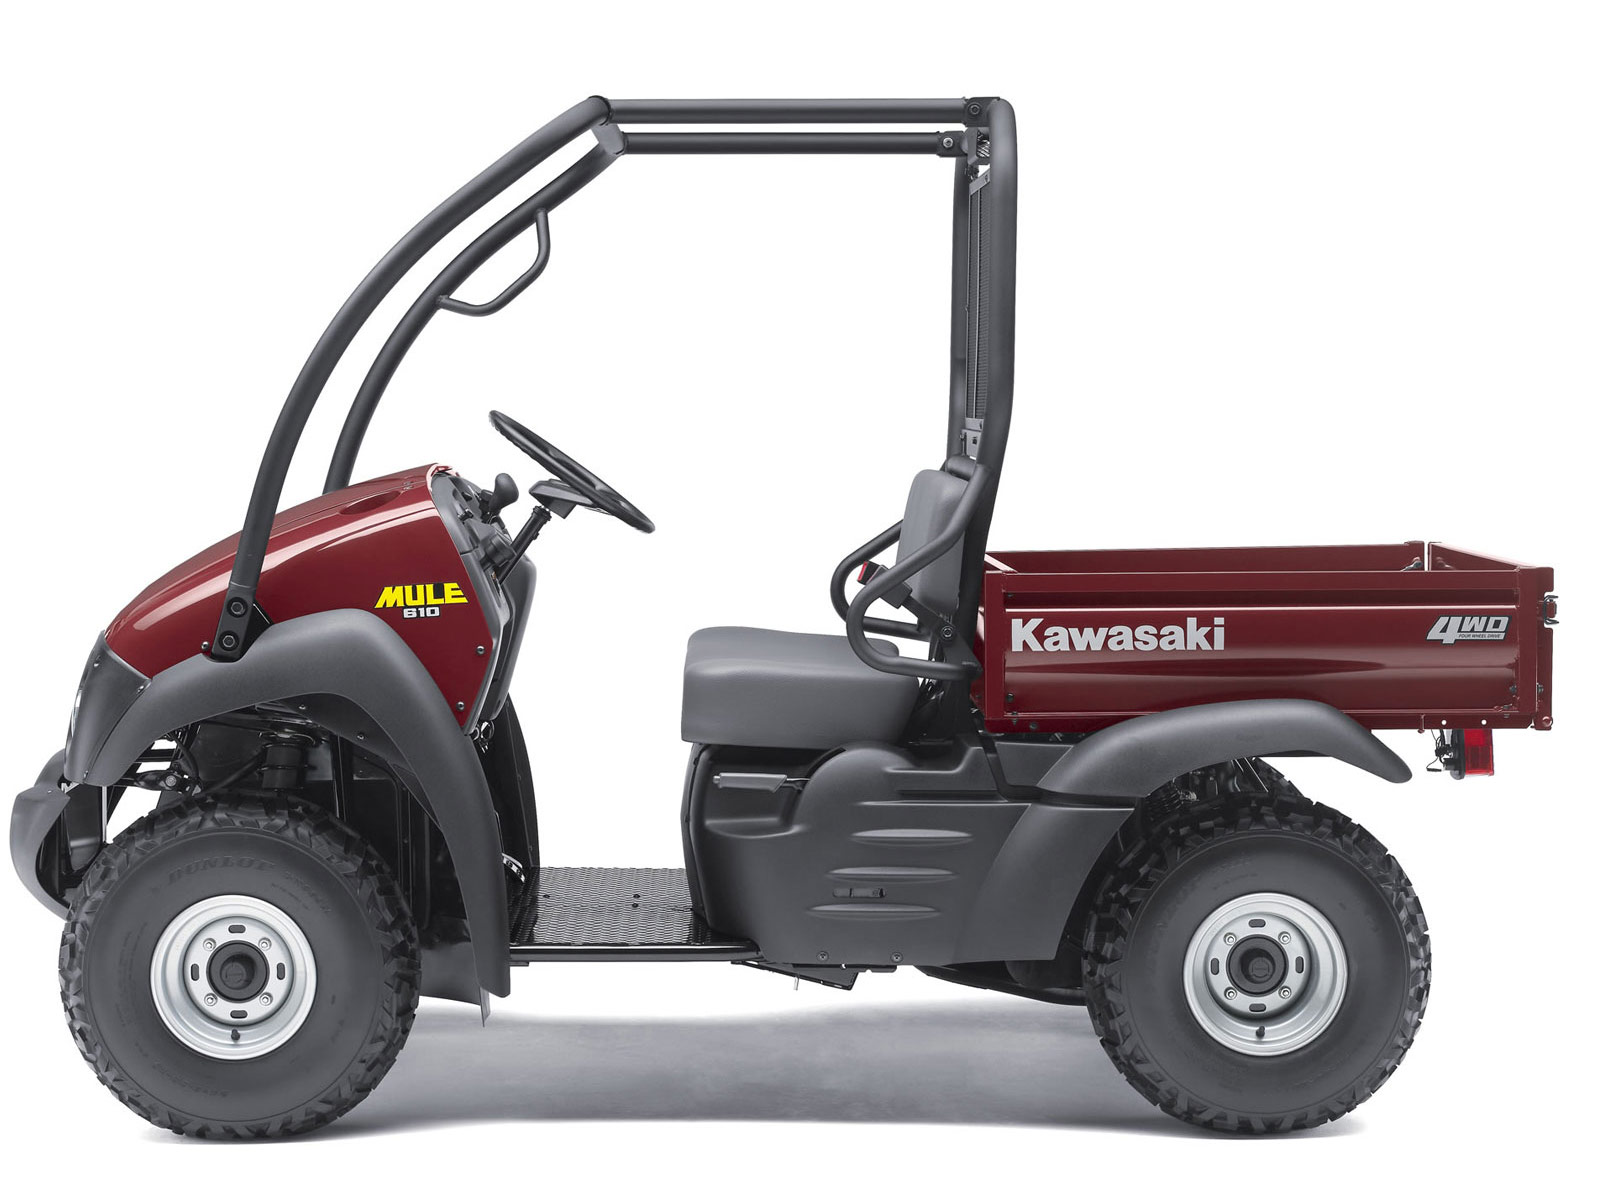 2012 KAWASAKI Mule 610 4x4 ATV pictures  specifications